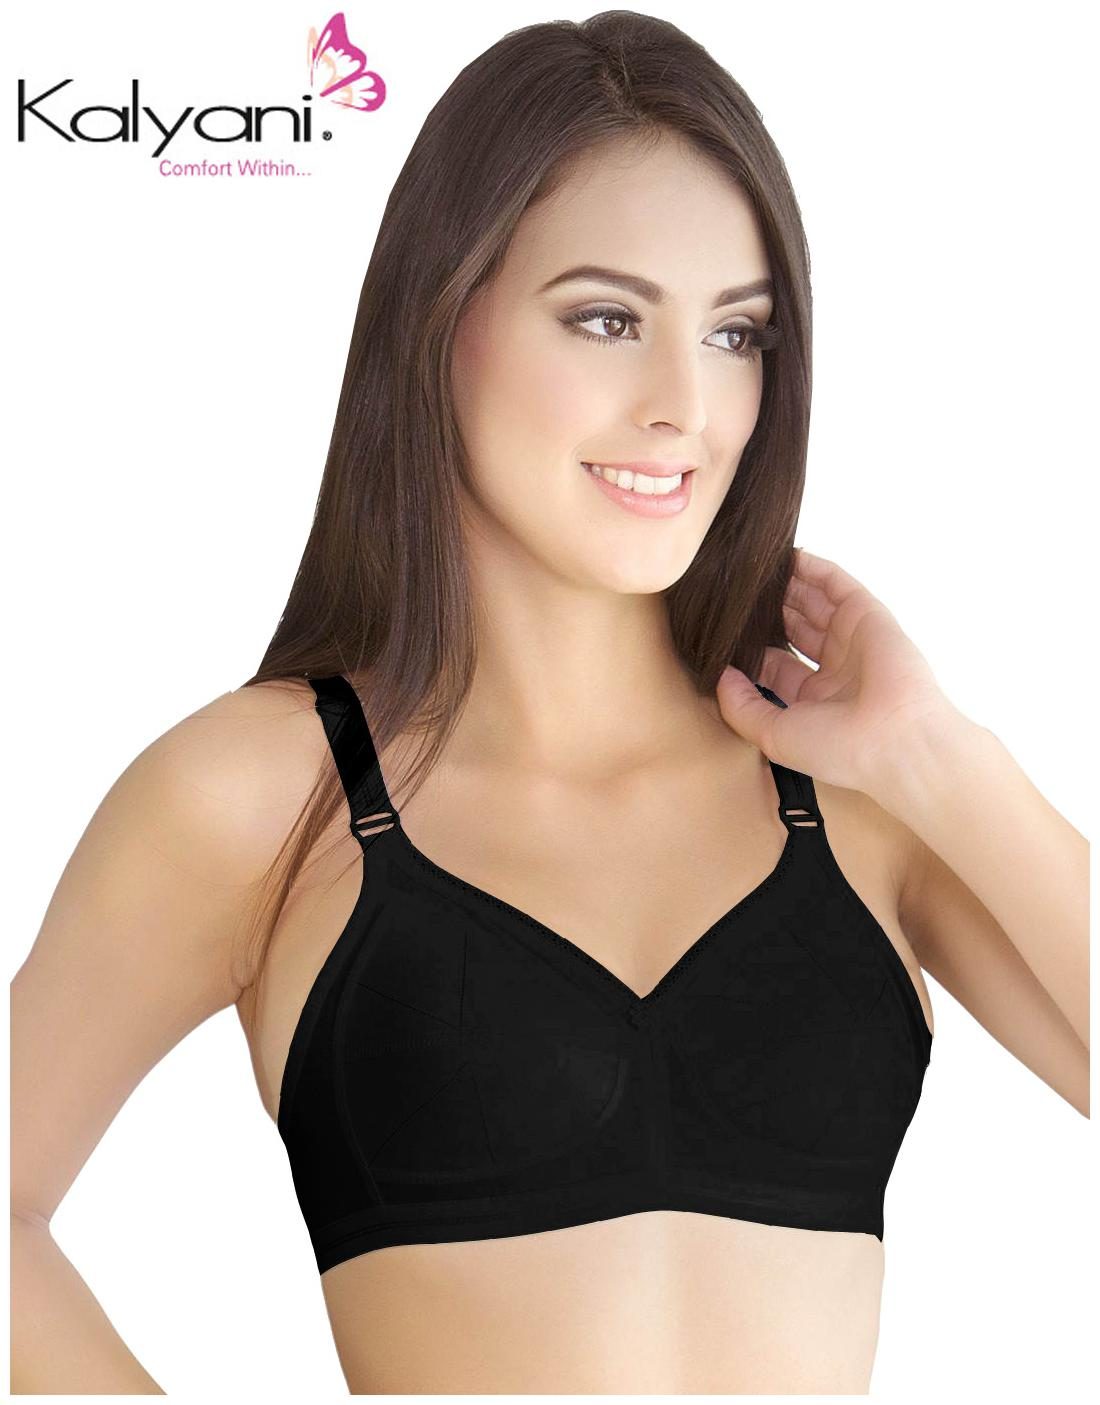 https://assetscdn1.paytm.com/images/catalog/product/A/AP/APPKALYANI-COTTKUKU2181041FEB37A/1562943721568_0..jpg